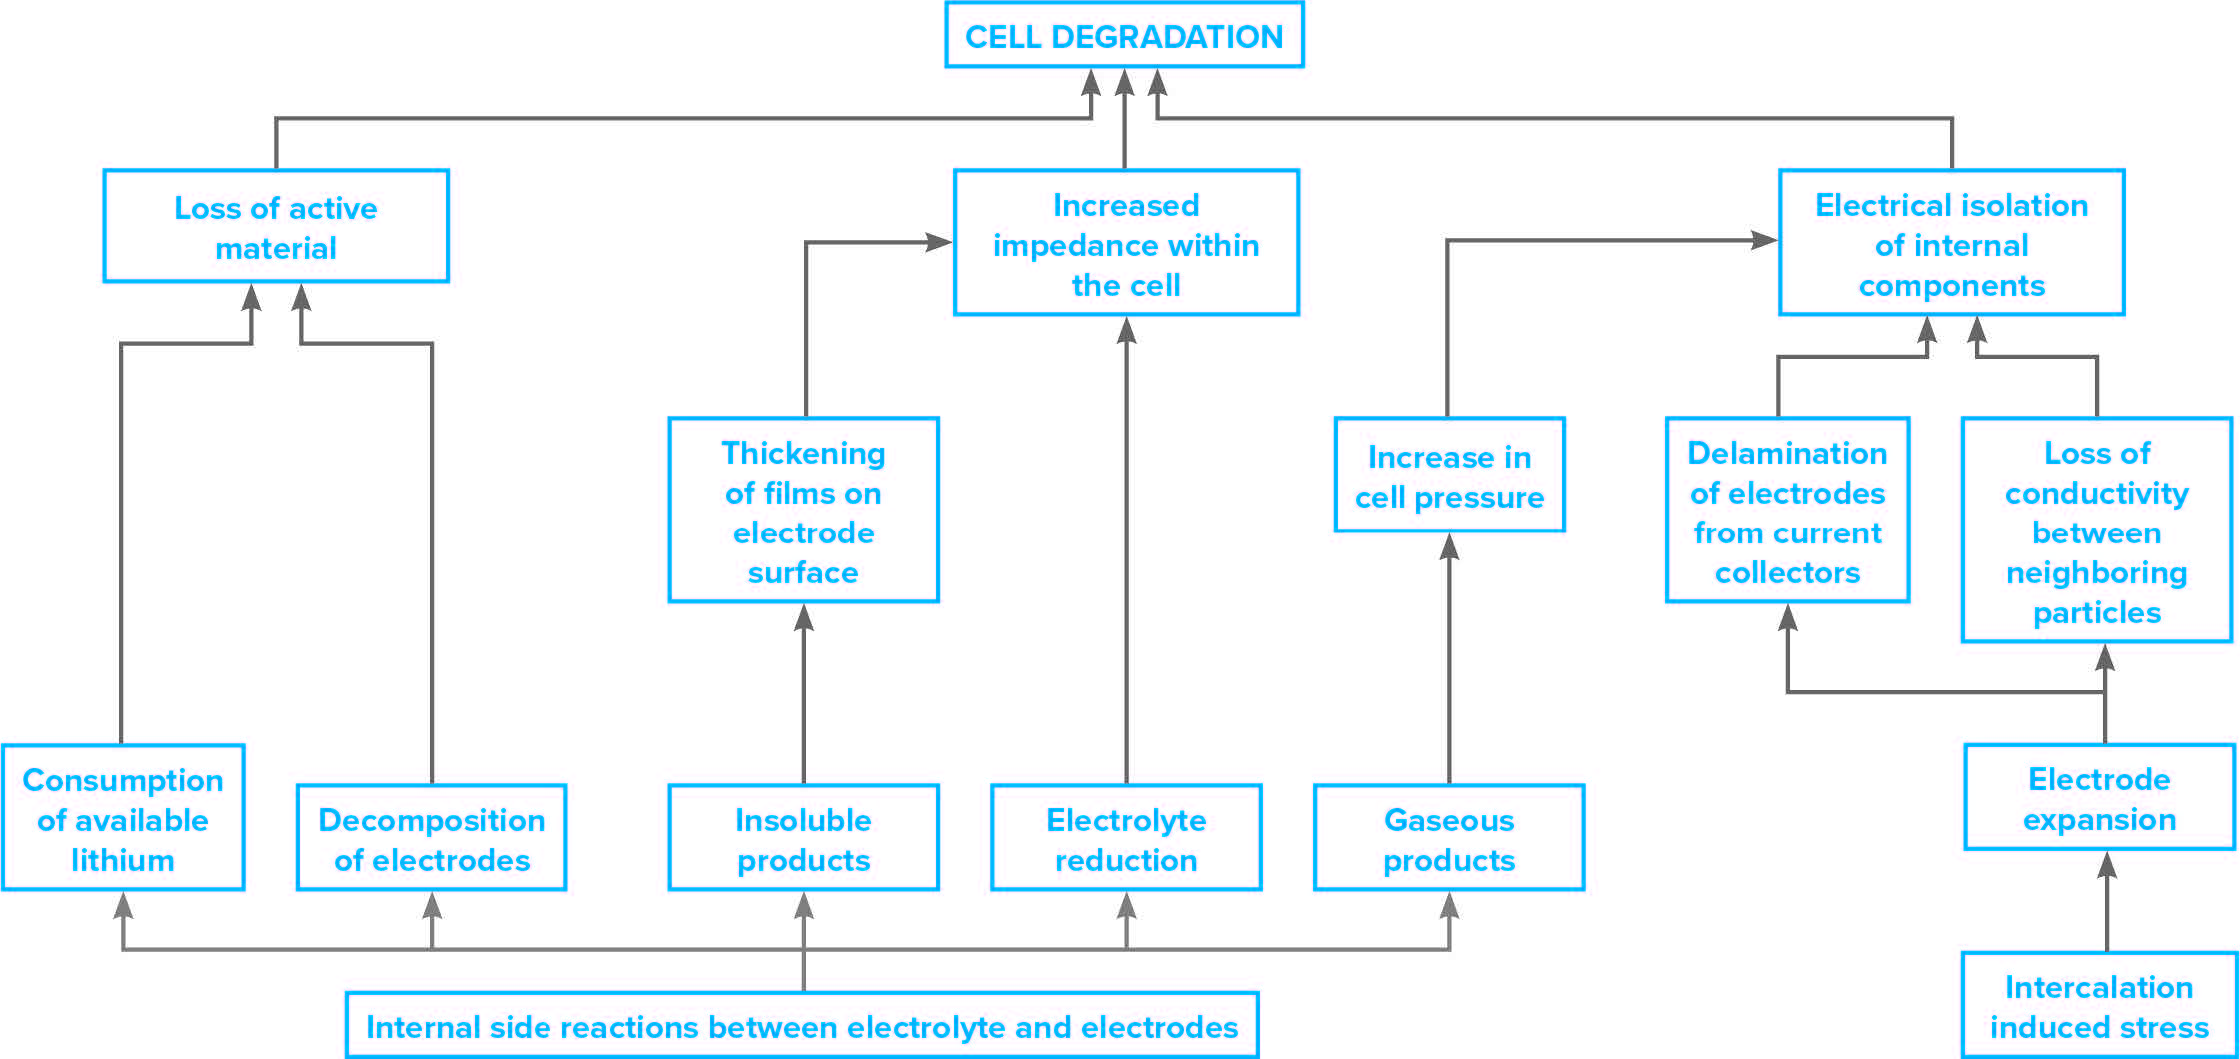 Progression of mechanisms that lead to degradation of battery cells in a battery characterization project.